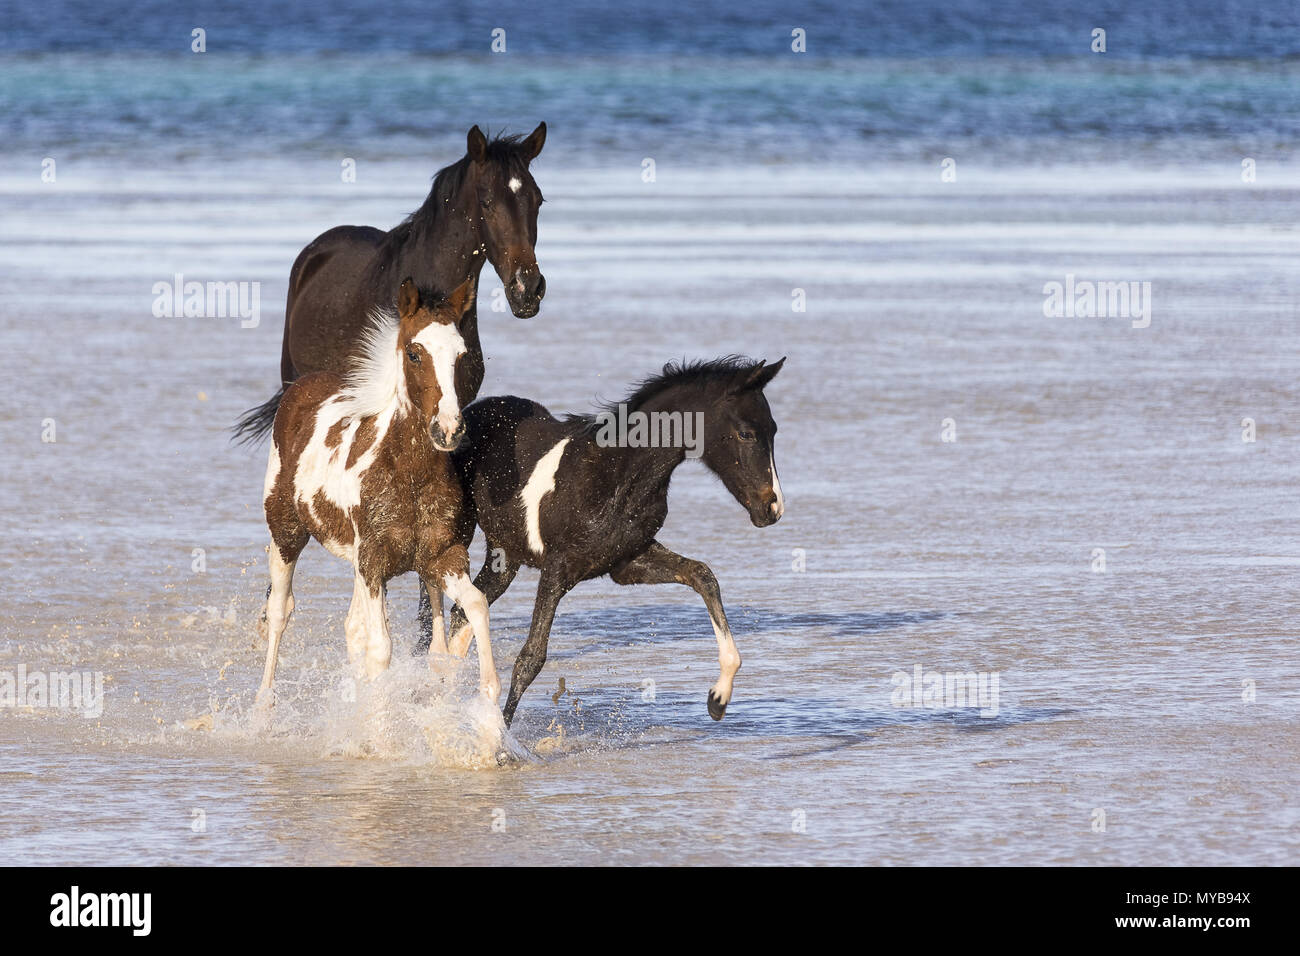 Barb horse. Bay horse and Pinto foals walking in shallow water. Egypt. - Stock Image